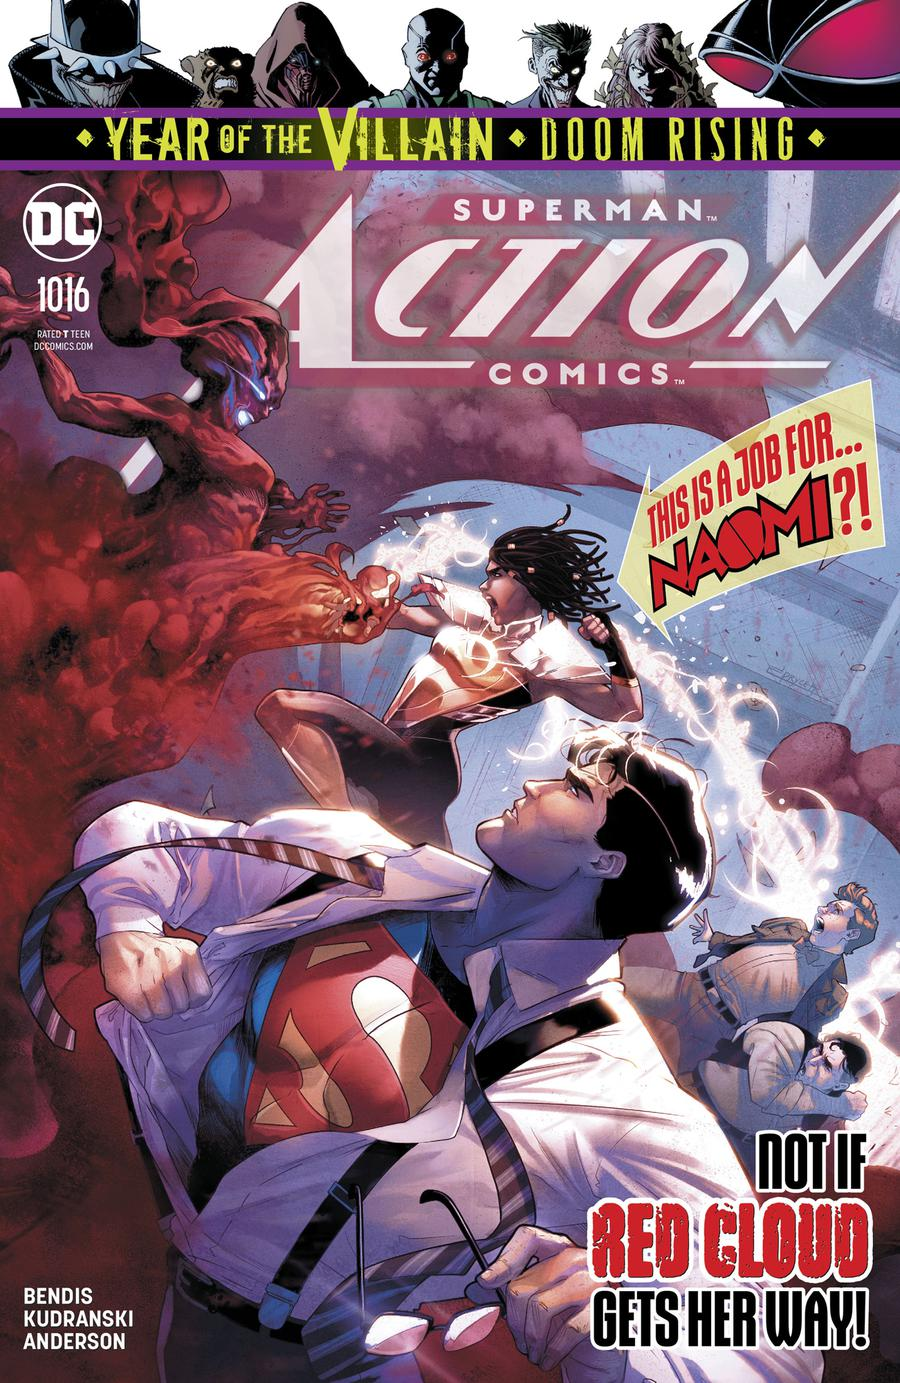 Action Comics Vol 2 #1016 Cover A Regular Jamal Campbell Cover (Year Of The Villain Doom Rising Tie-In)